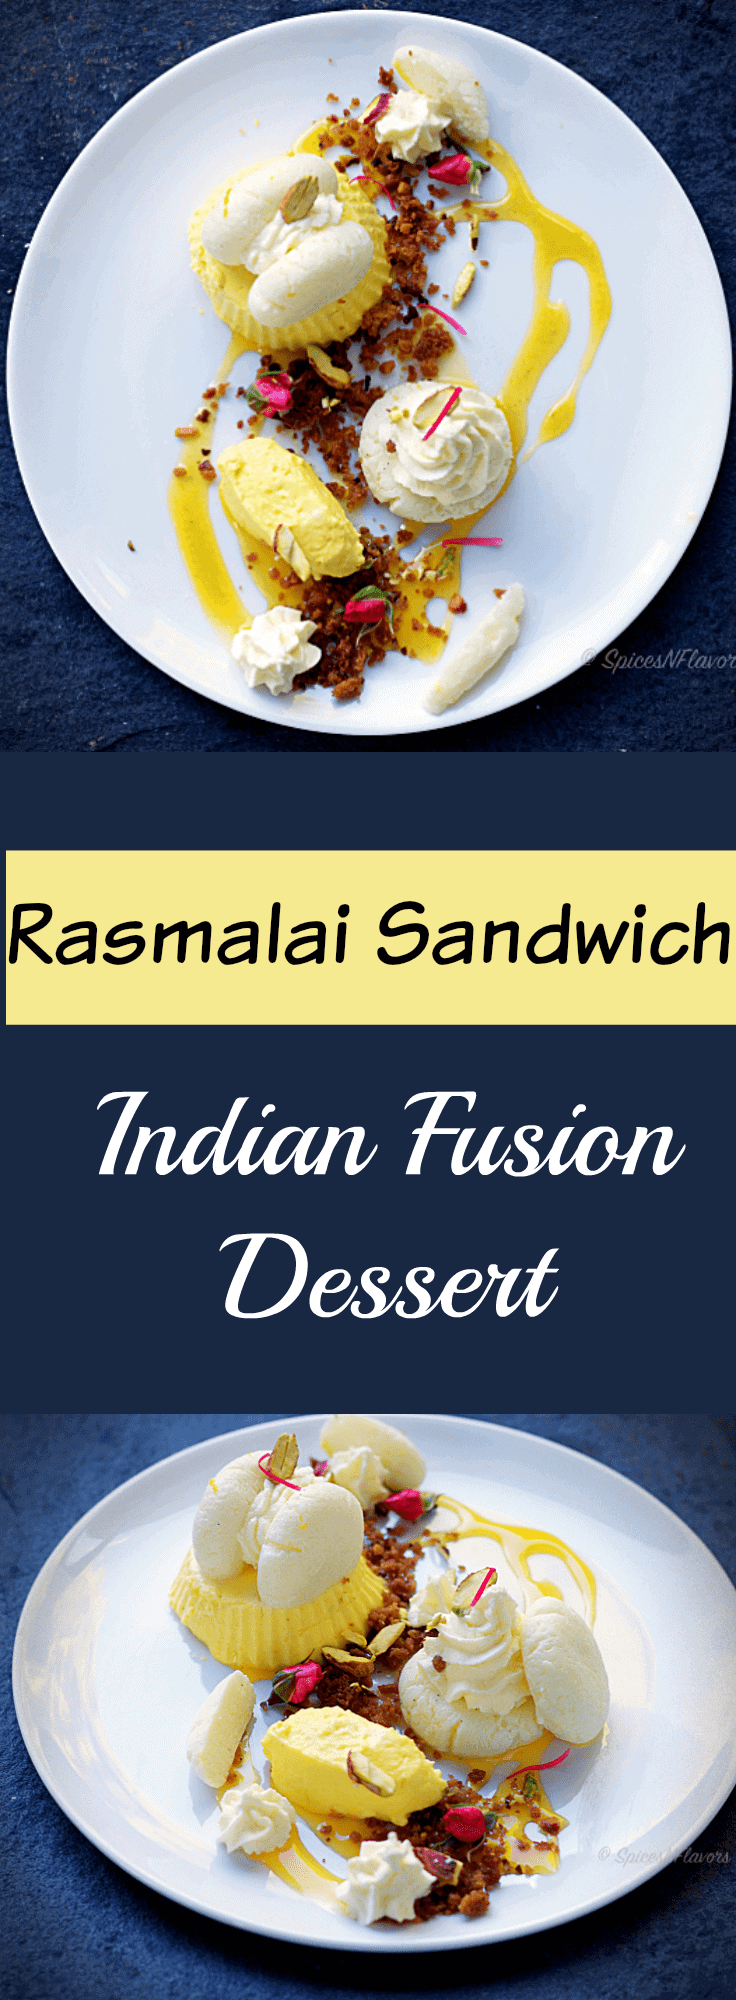 Malai Sandwich with Kesar Mousse Cardamom Crumble and Passionfruit Coulis indian fusion dessert rasmalai